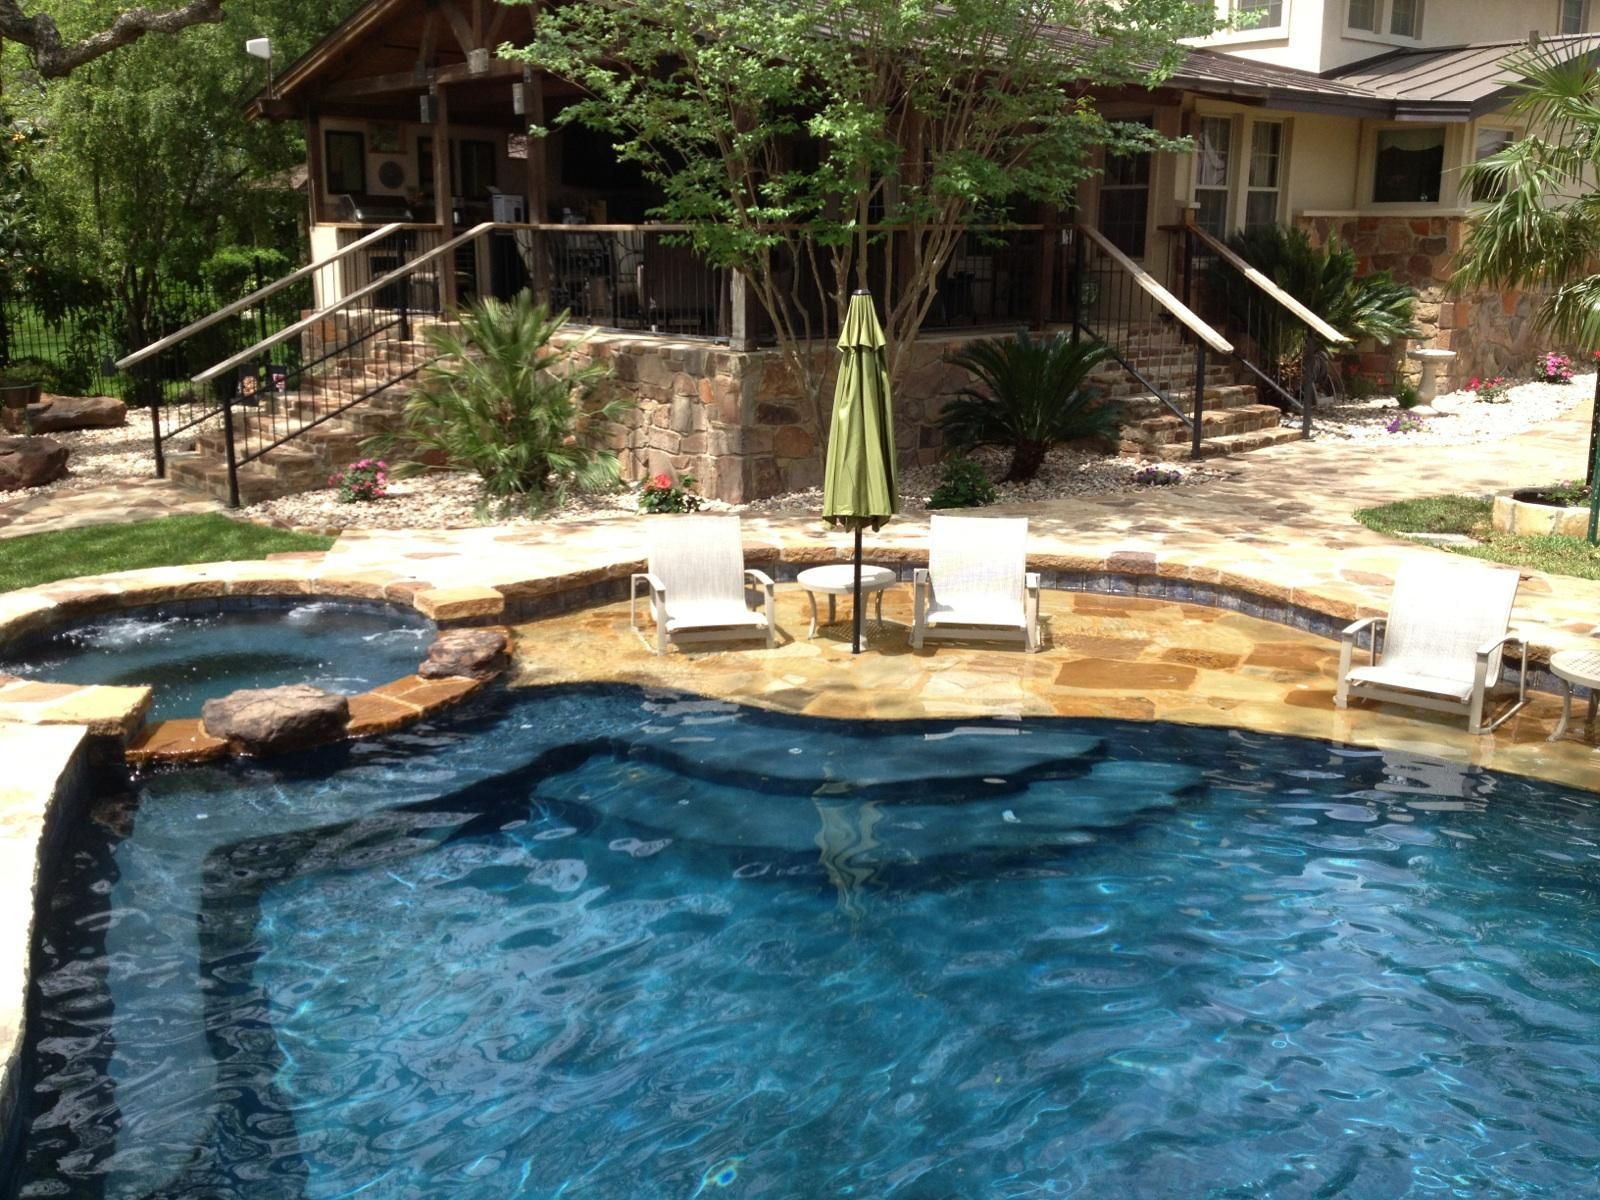 Stone Baja Shelf Entry Pool Level Spa With Stone Spillway